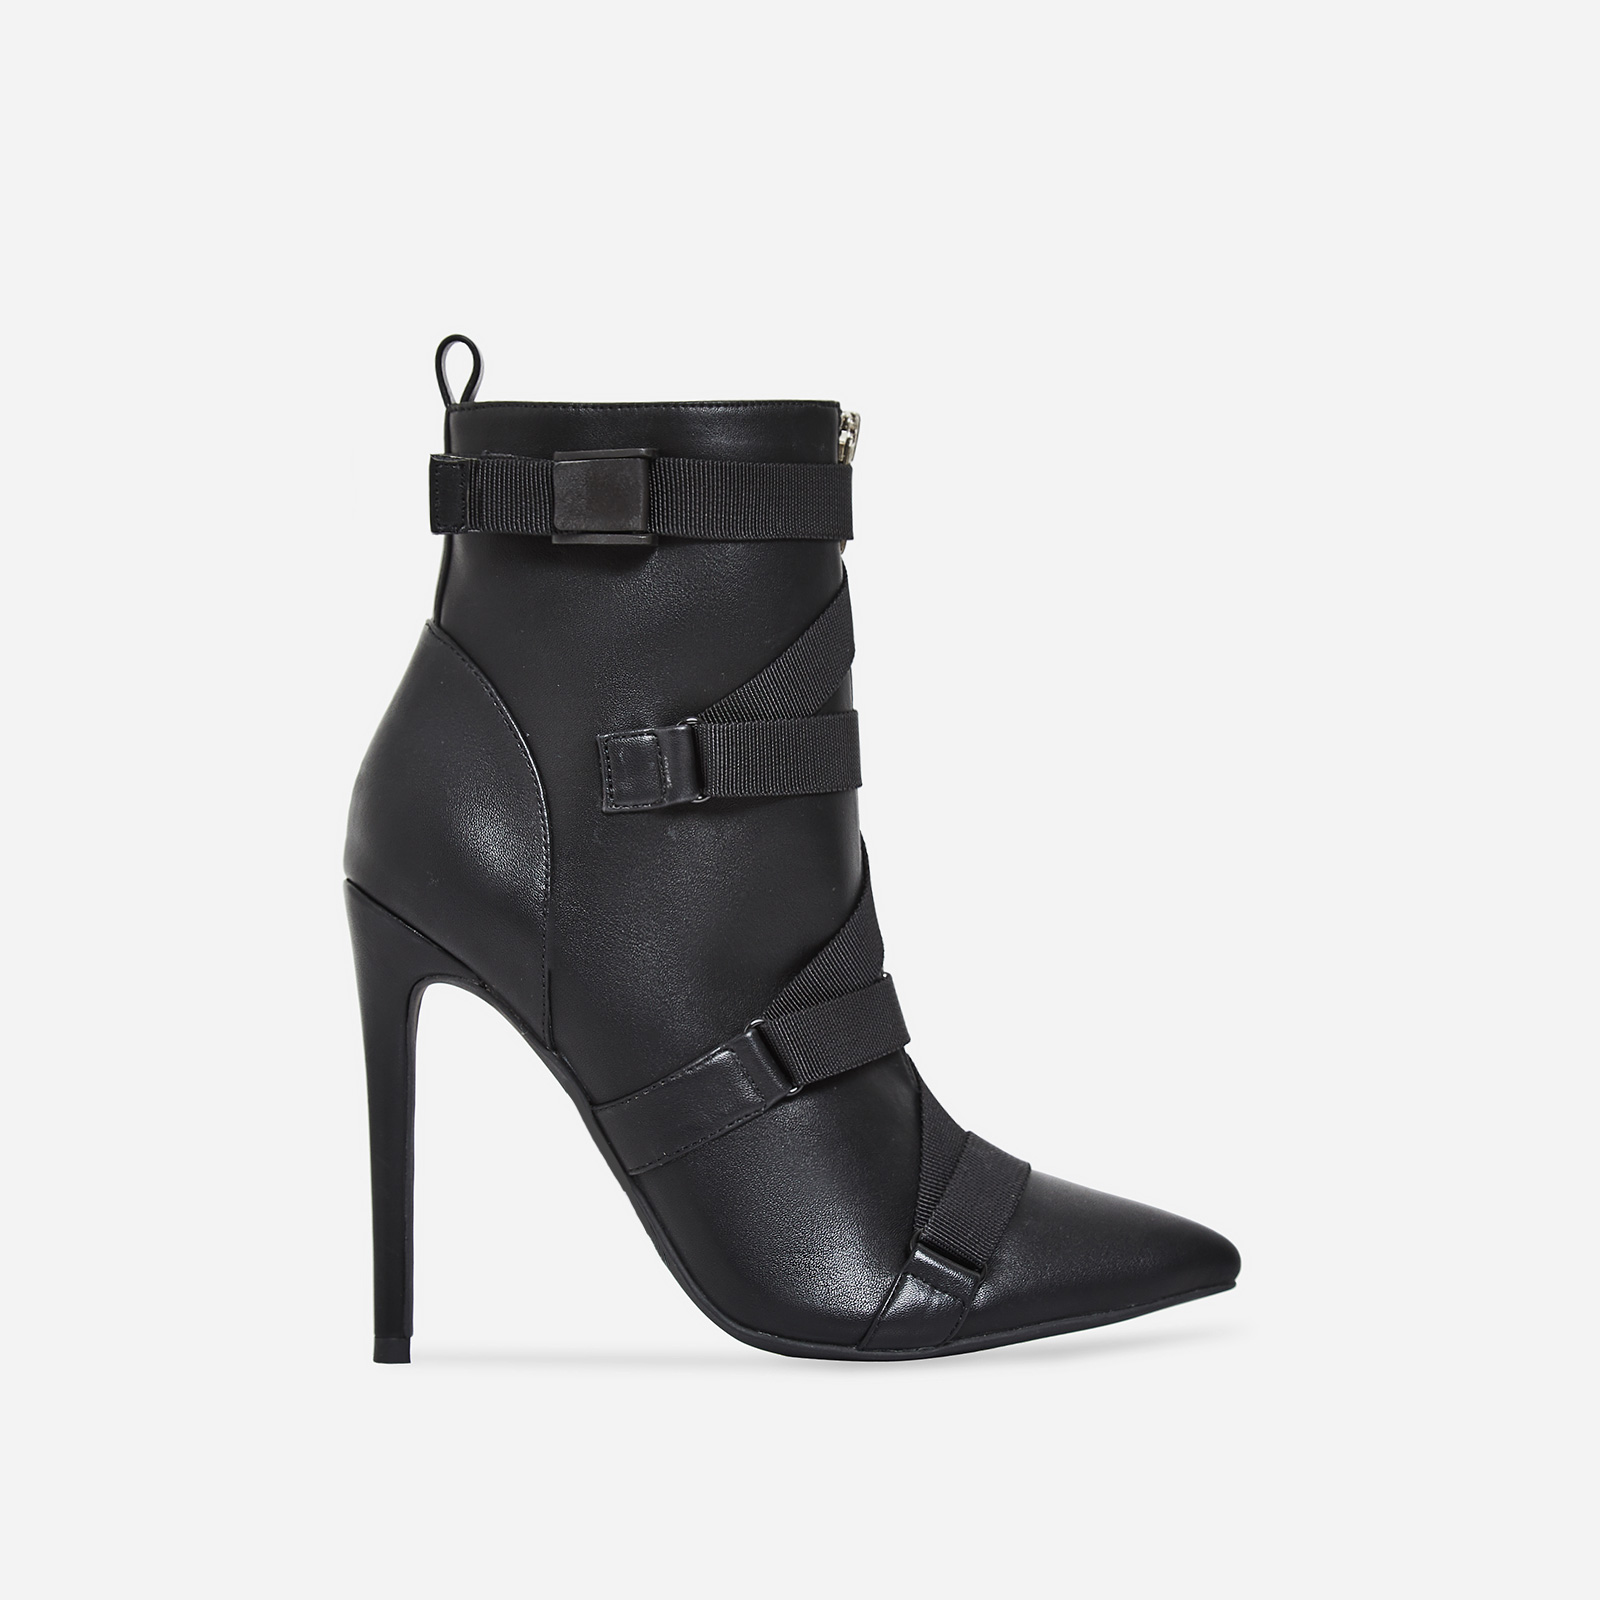 Halle Strap Detail Ankle Boot In Black Faux Leather